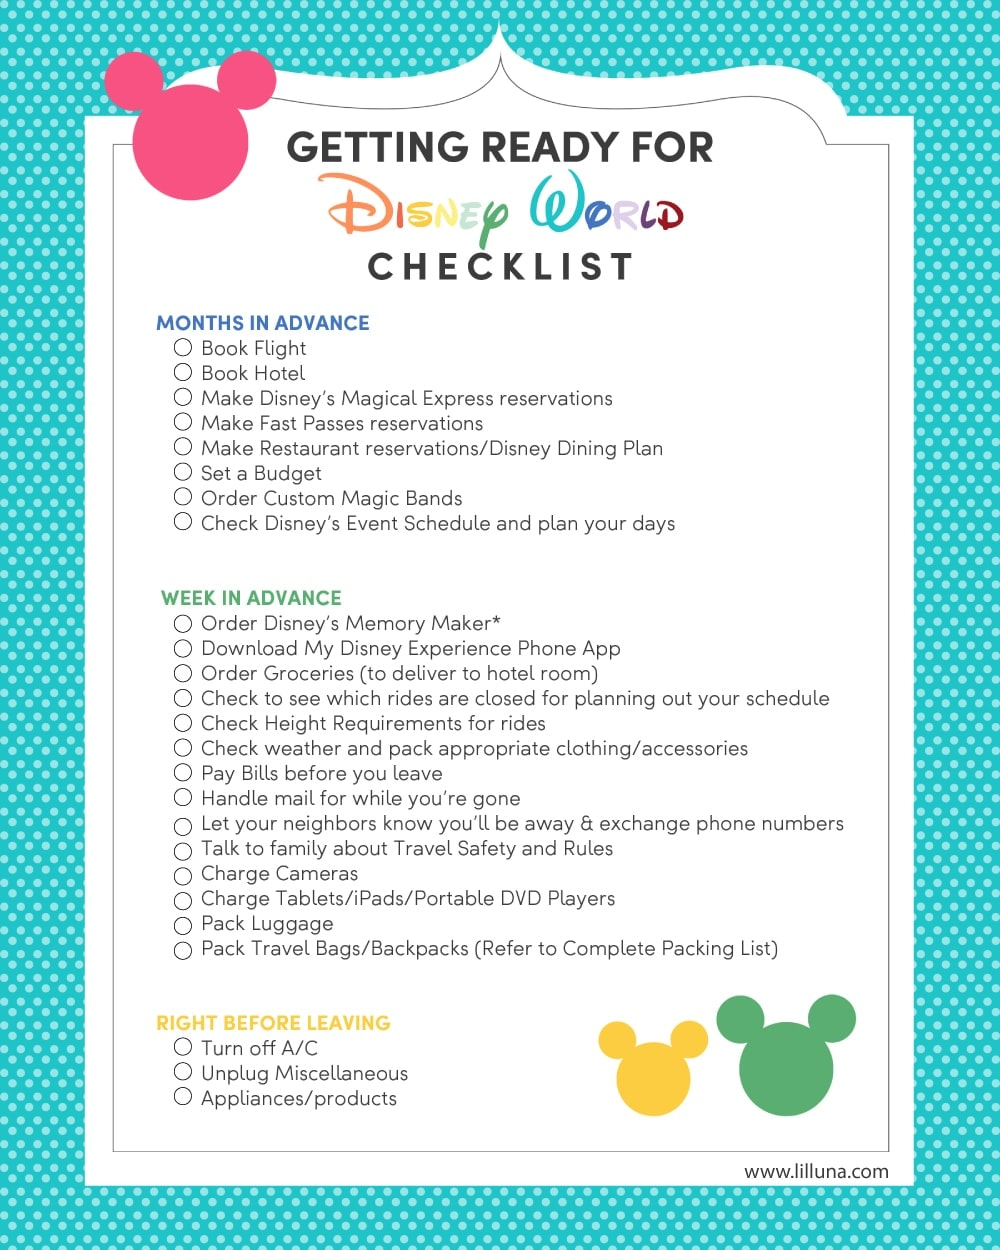 Getting ready for Disney World Checklist